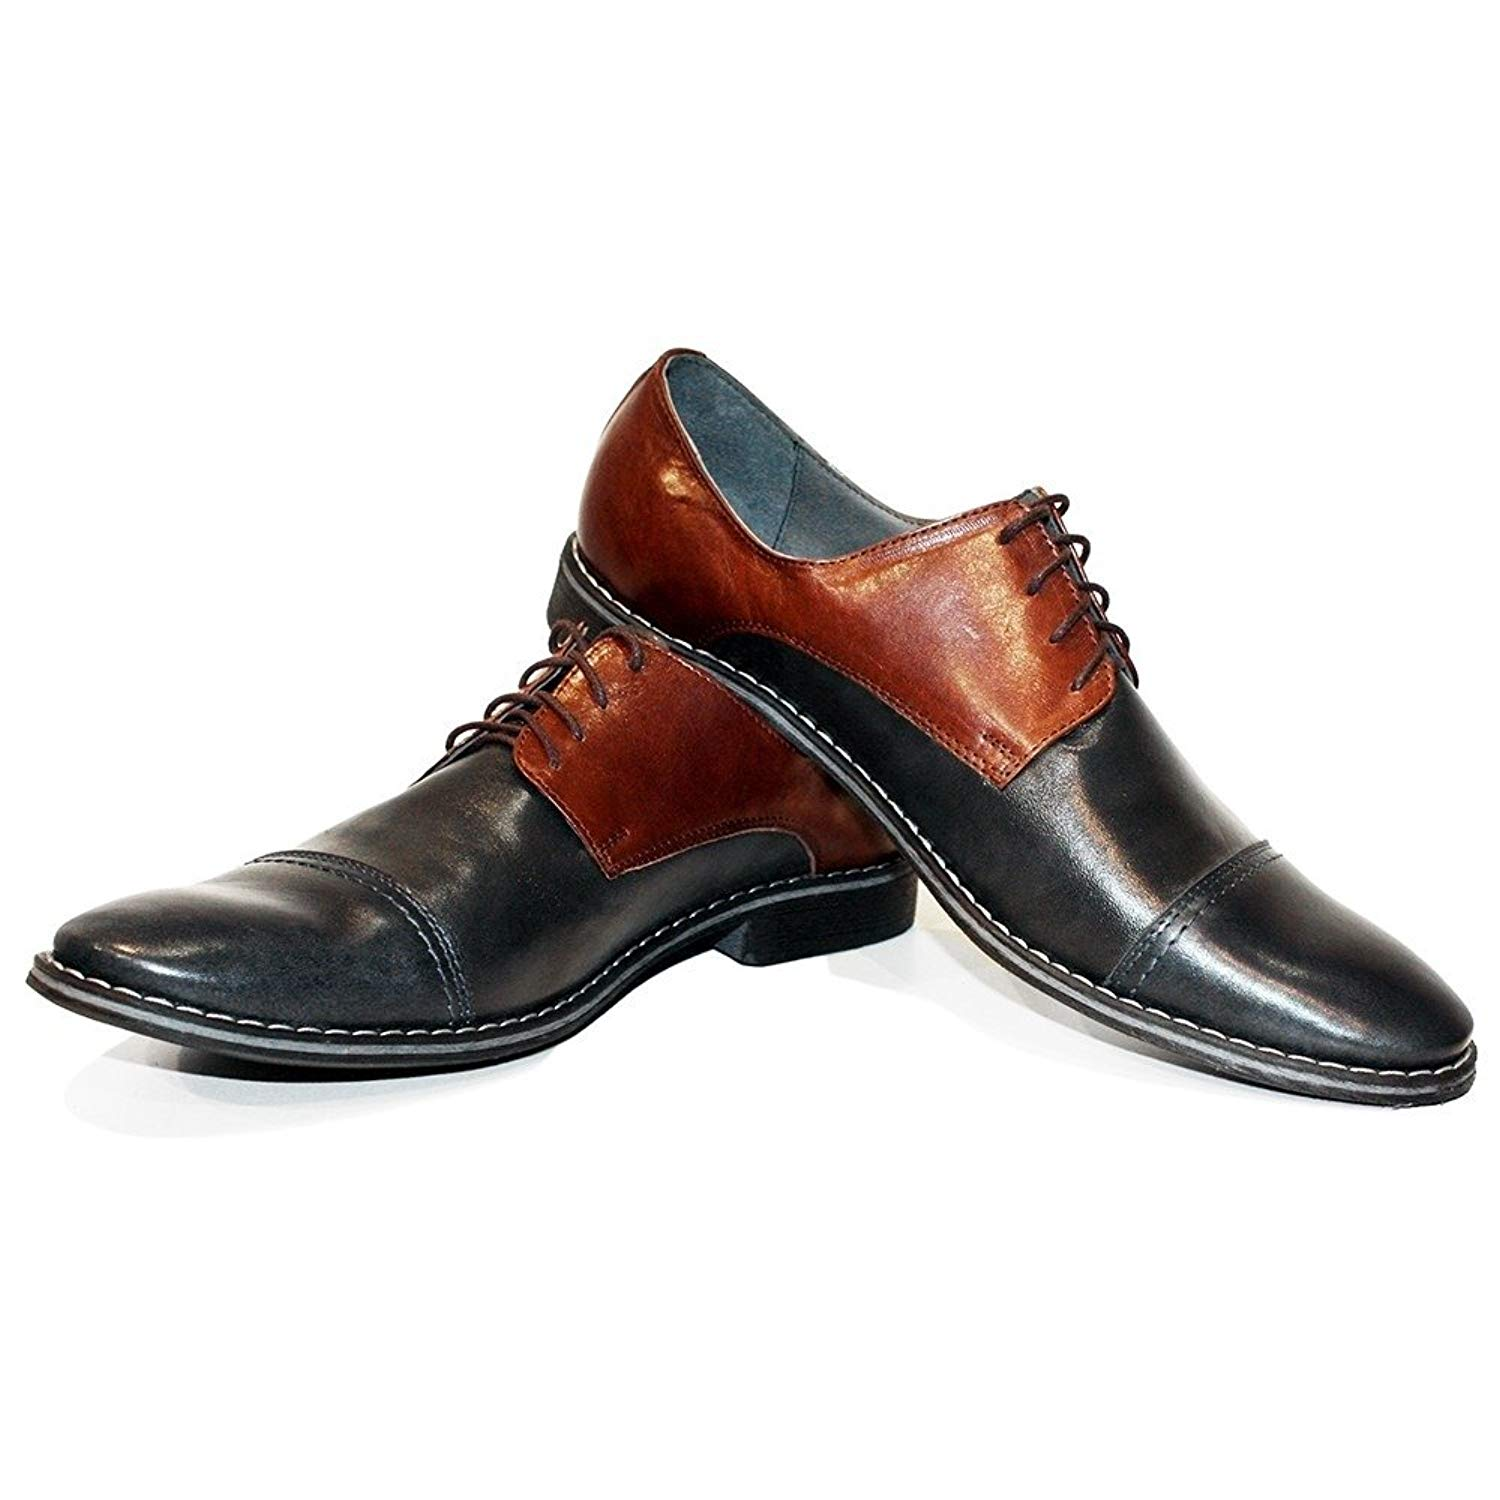 Modello Galanto - Handmade Italian Mens Brown Oxfords Dress Shoes - Cowhide Smooth Leather - Lace-up